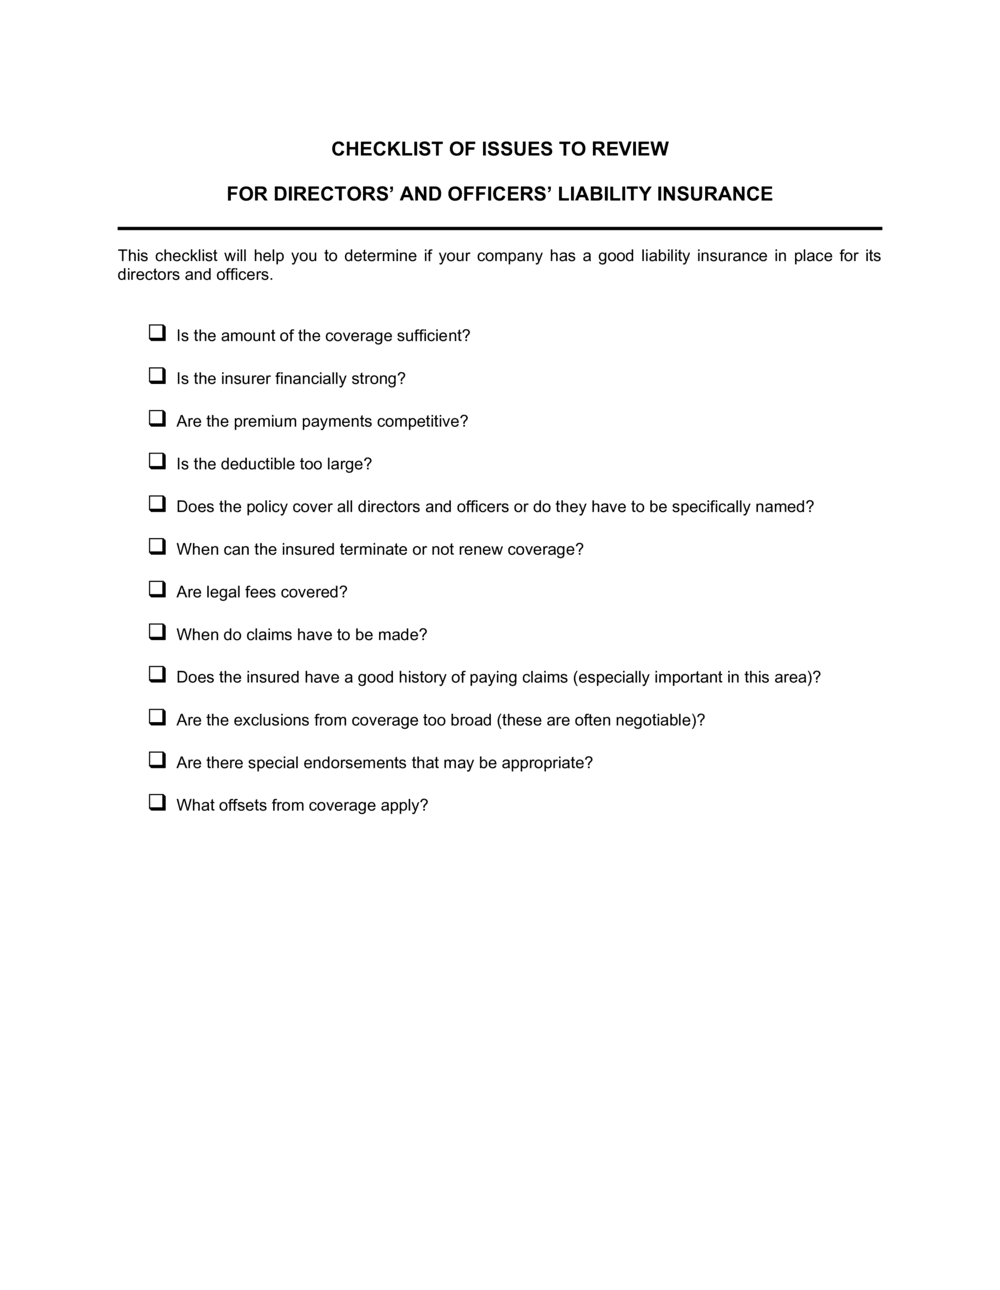 Business-in-a-Box's Checklist Directors and Officers Insurance Template